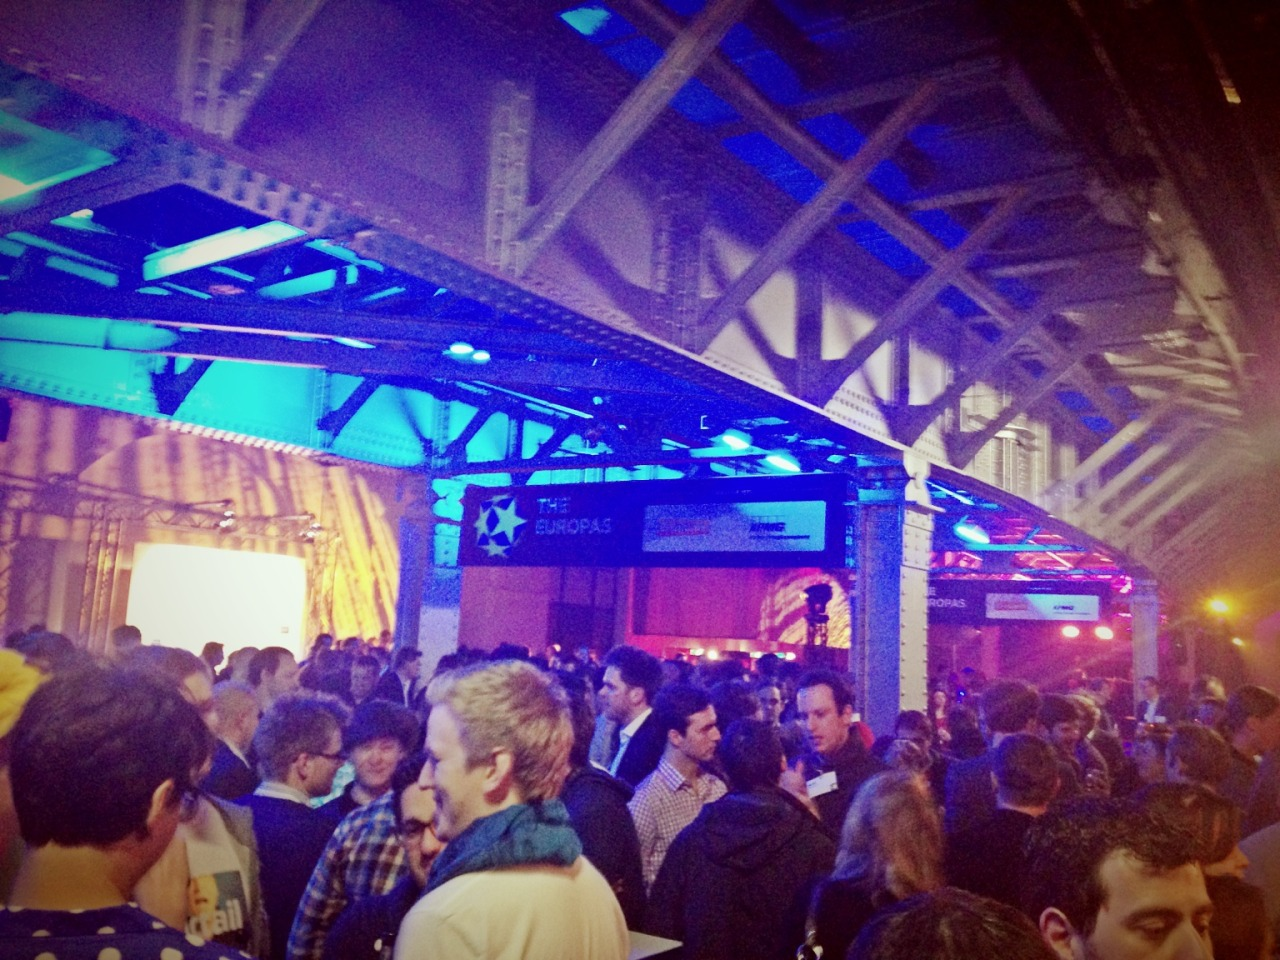 We made it here! #TheEuropas with Geoff at Postbahnhof – View on Path.